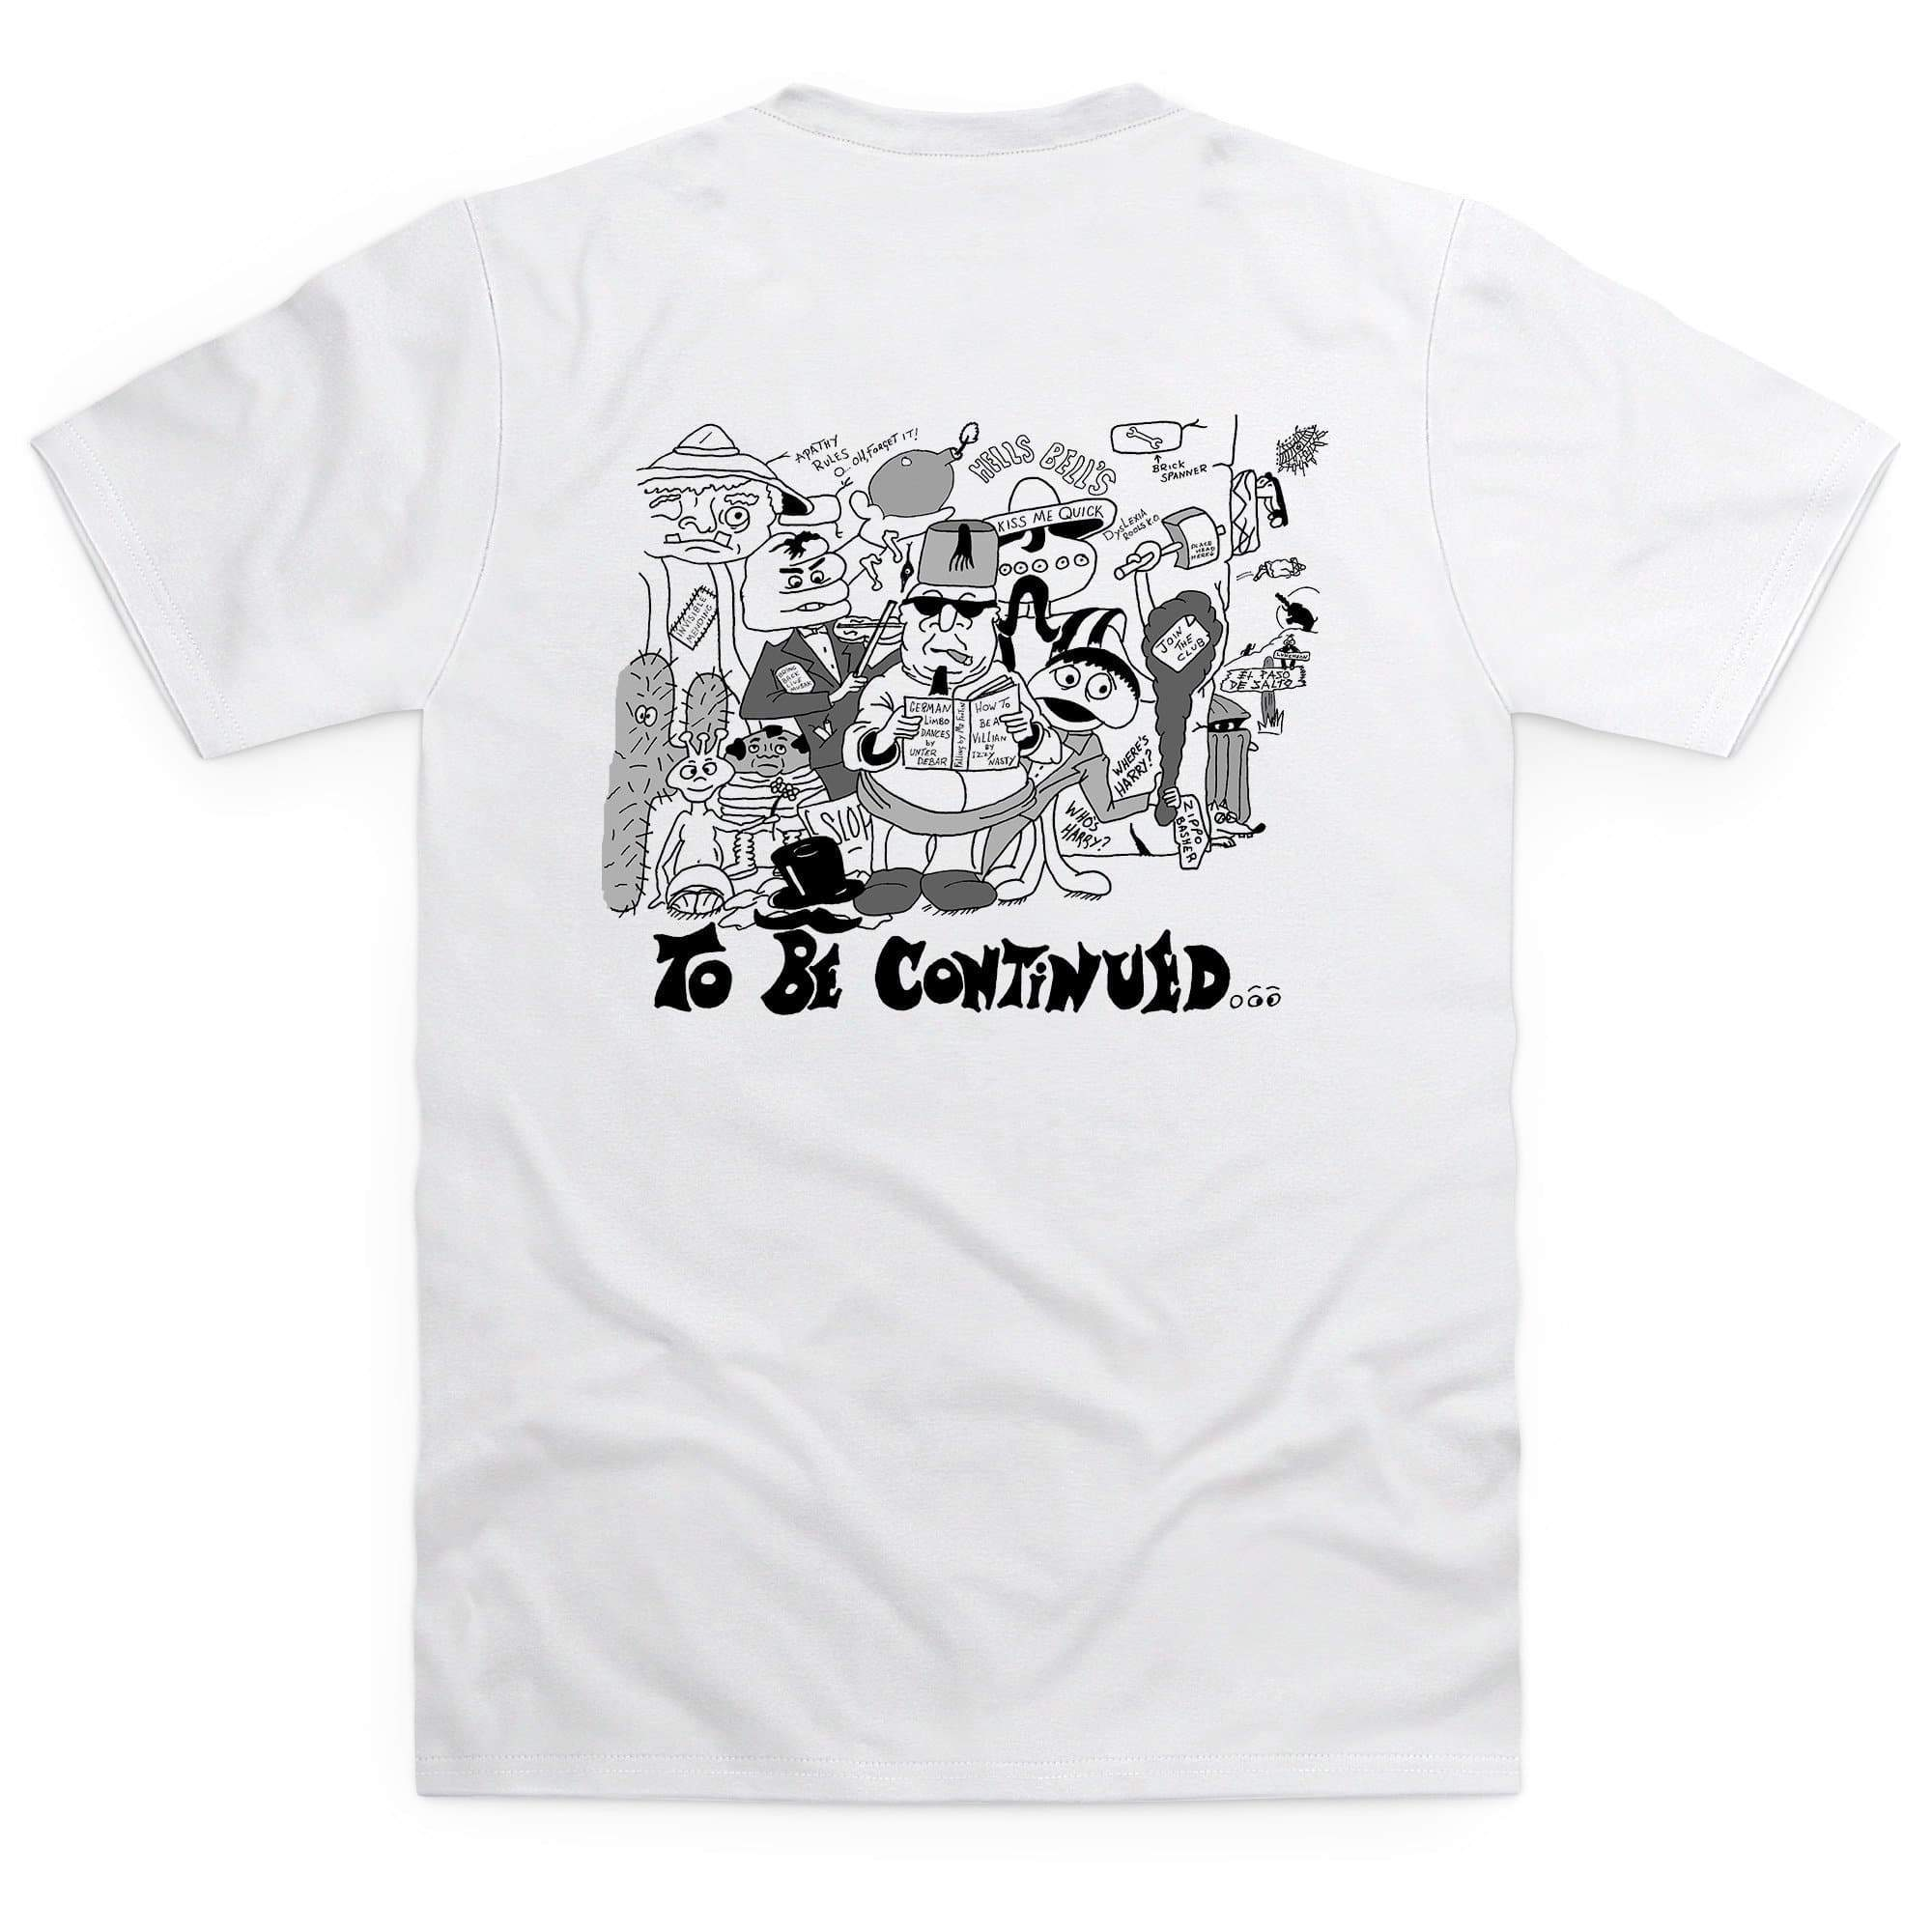 Dick Spanner Comic Strip Men's White T-Shirt [Official & Exclusive] - The Gerry Anderson Store